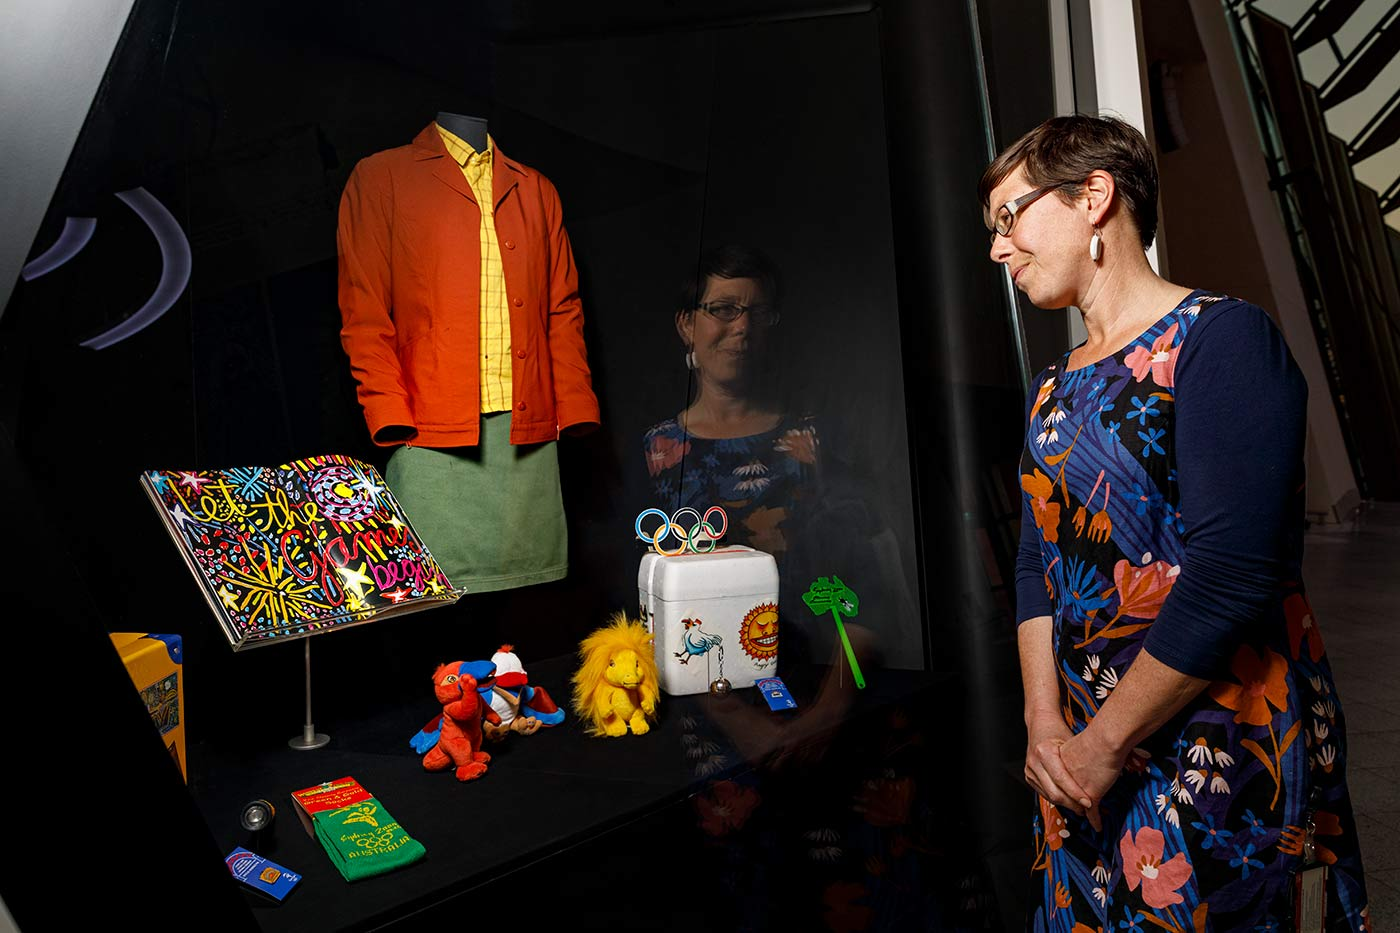 A female curator is looking lovingly at an exhibition display featuring objects from the Sydney Olympics.